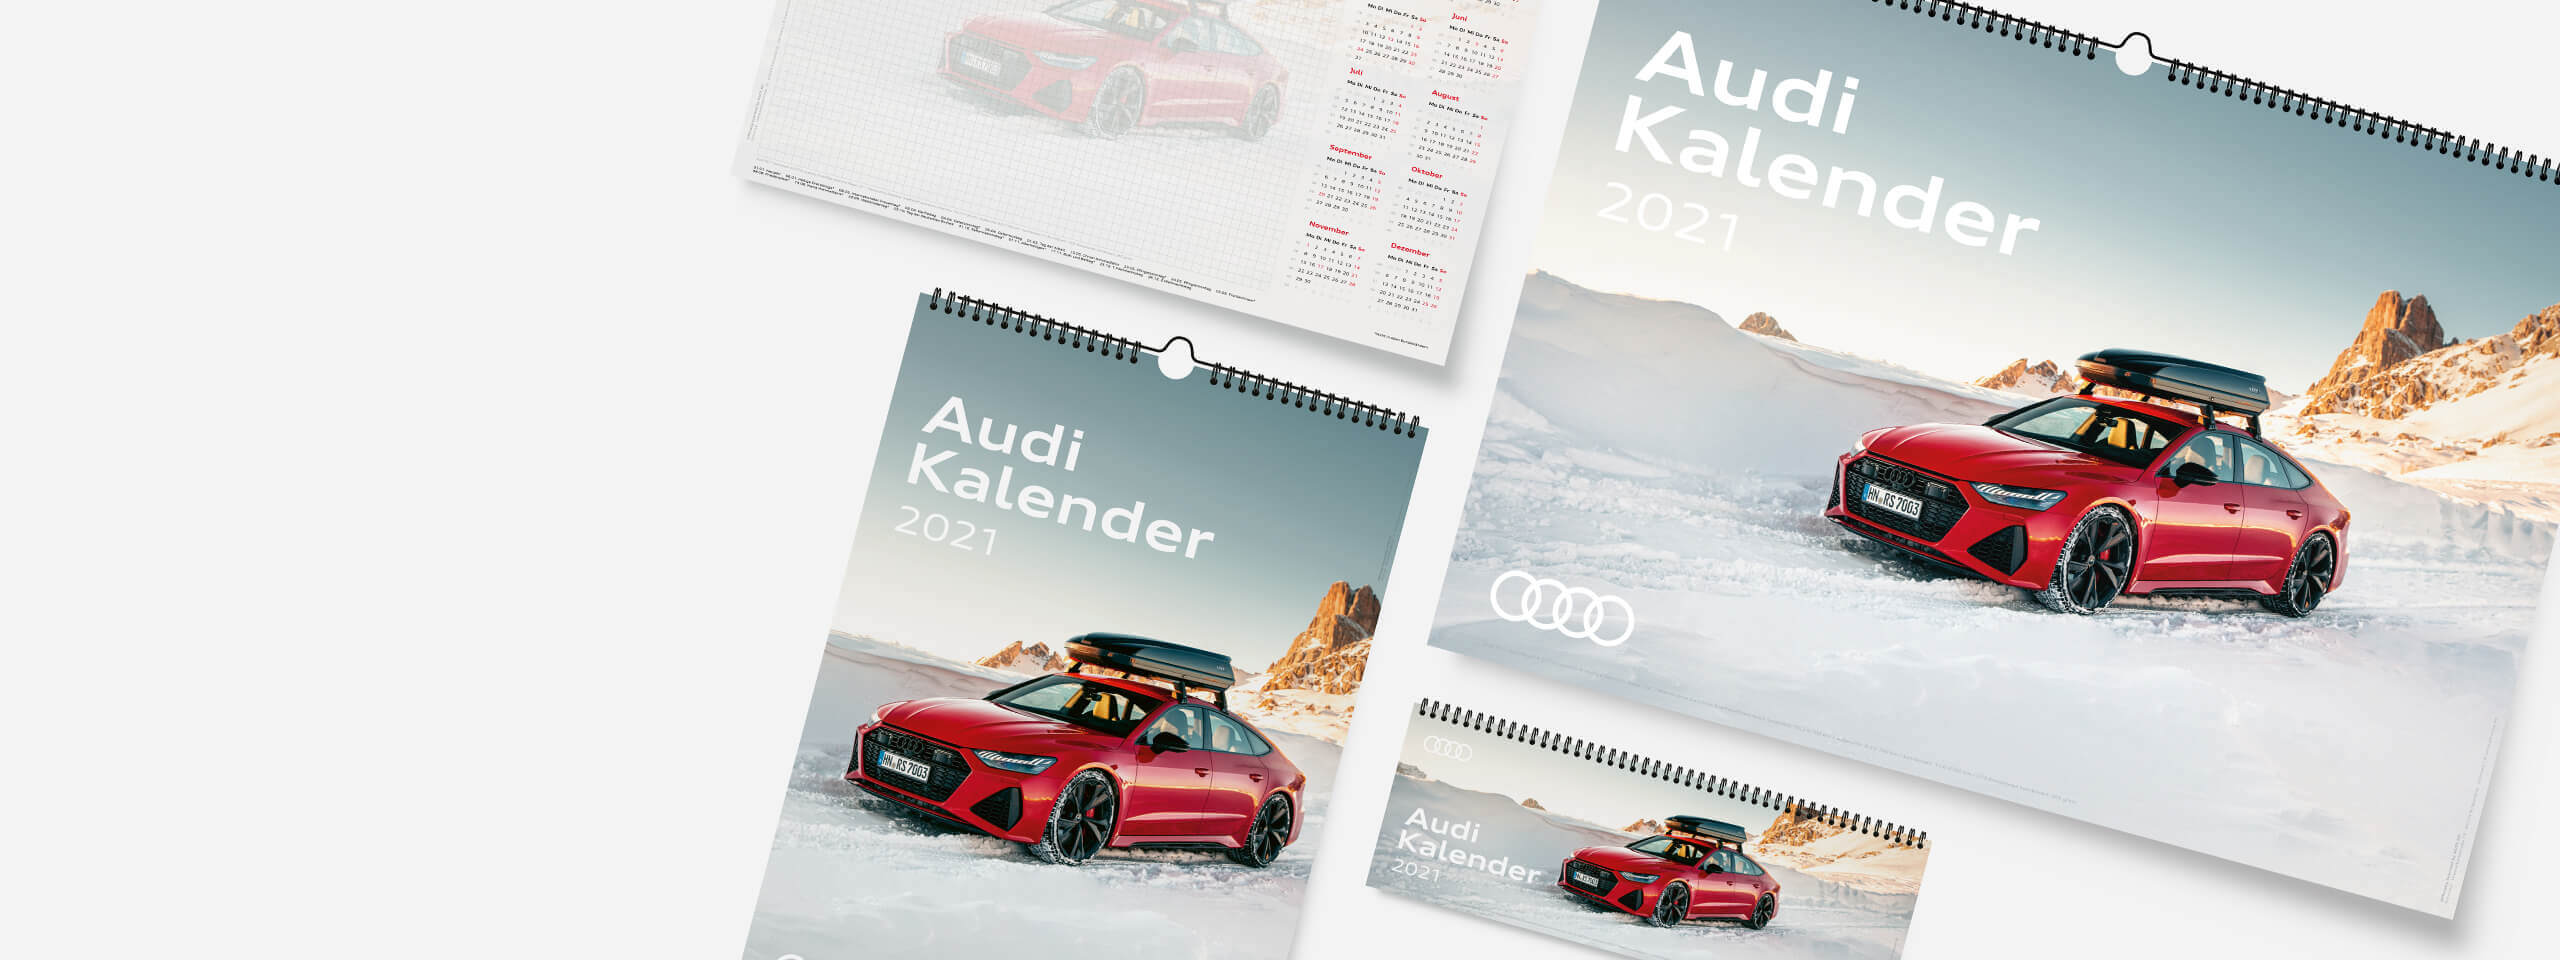 Audi Kalender 2021 – Officially licensed by AUDI AG